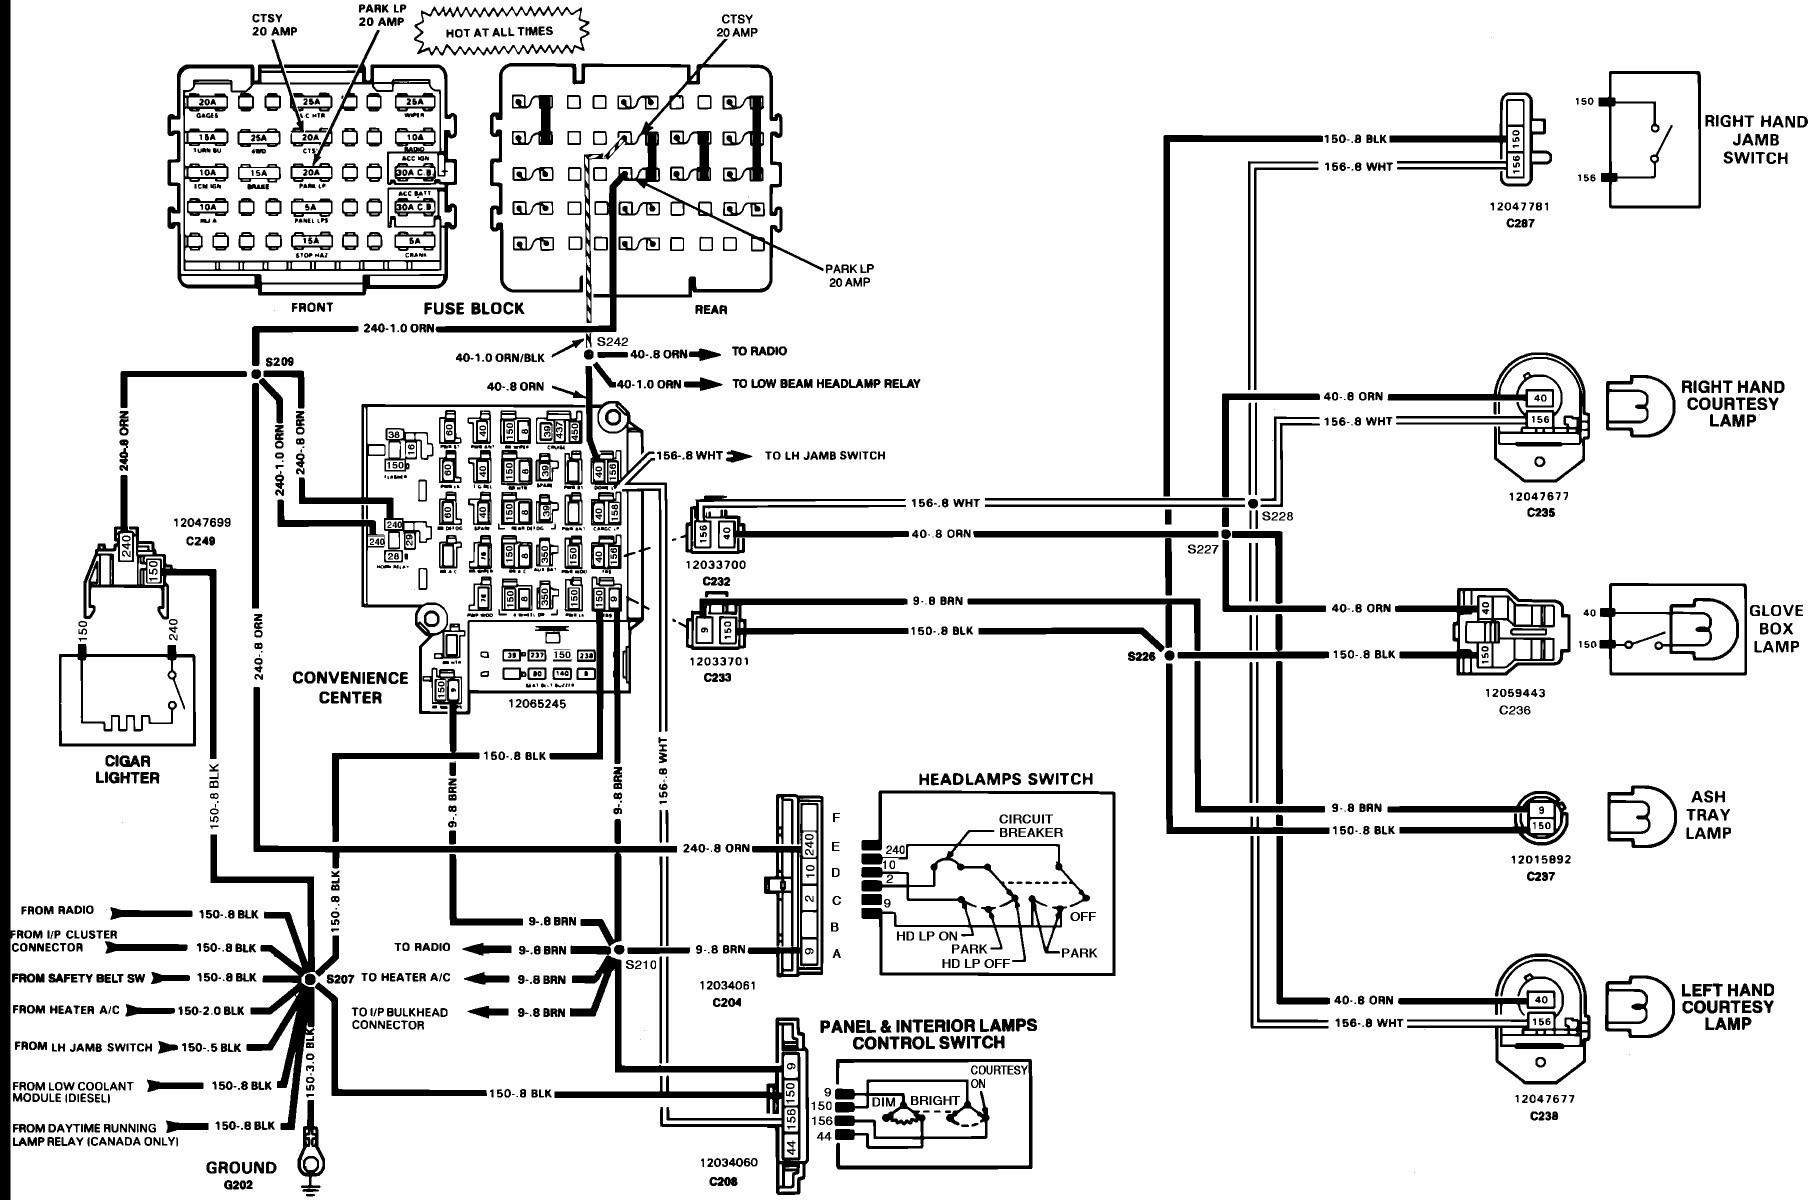 2002 Saturn L Series Radio Wiring Diagram | Wiring Liry on saturn race car, saturn car models, saturn ion fuse box diagram, saturn ion 2, saturn sedan models, saturn sl2 fuse box diagram, saturn ignition switch assembly, saturn fuel system diagrams, saturn sc2 radio wire diagram, saturn wiring harness, saturn cooling system diagram, saturn front suspension, saturn relay diagrams, saturn electrical schematic, saturn vue, saturn parts, saturn shift linkage, saturn l200 fuse diagram, saturn sensors diagrams, saturn ion door lock,